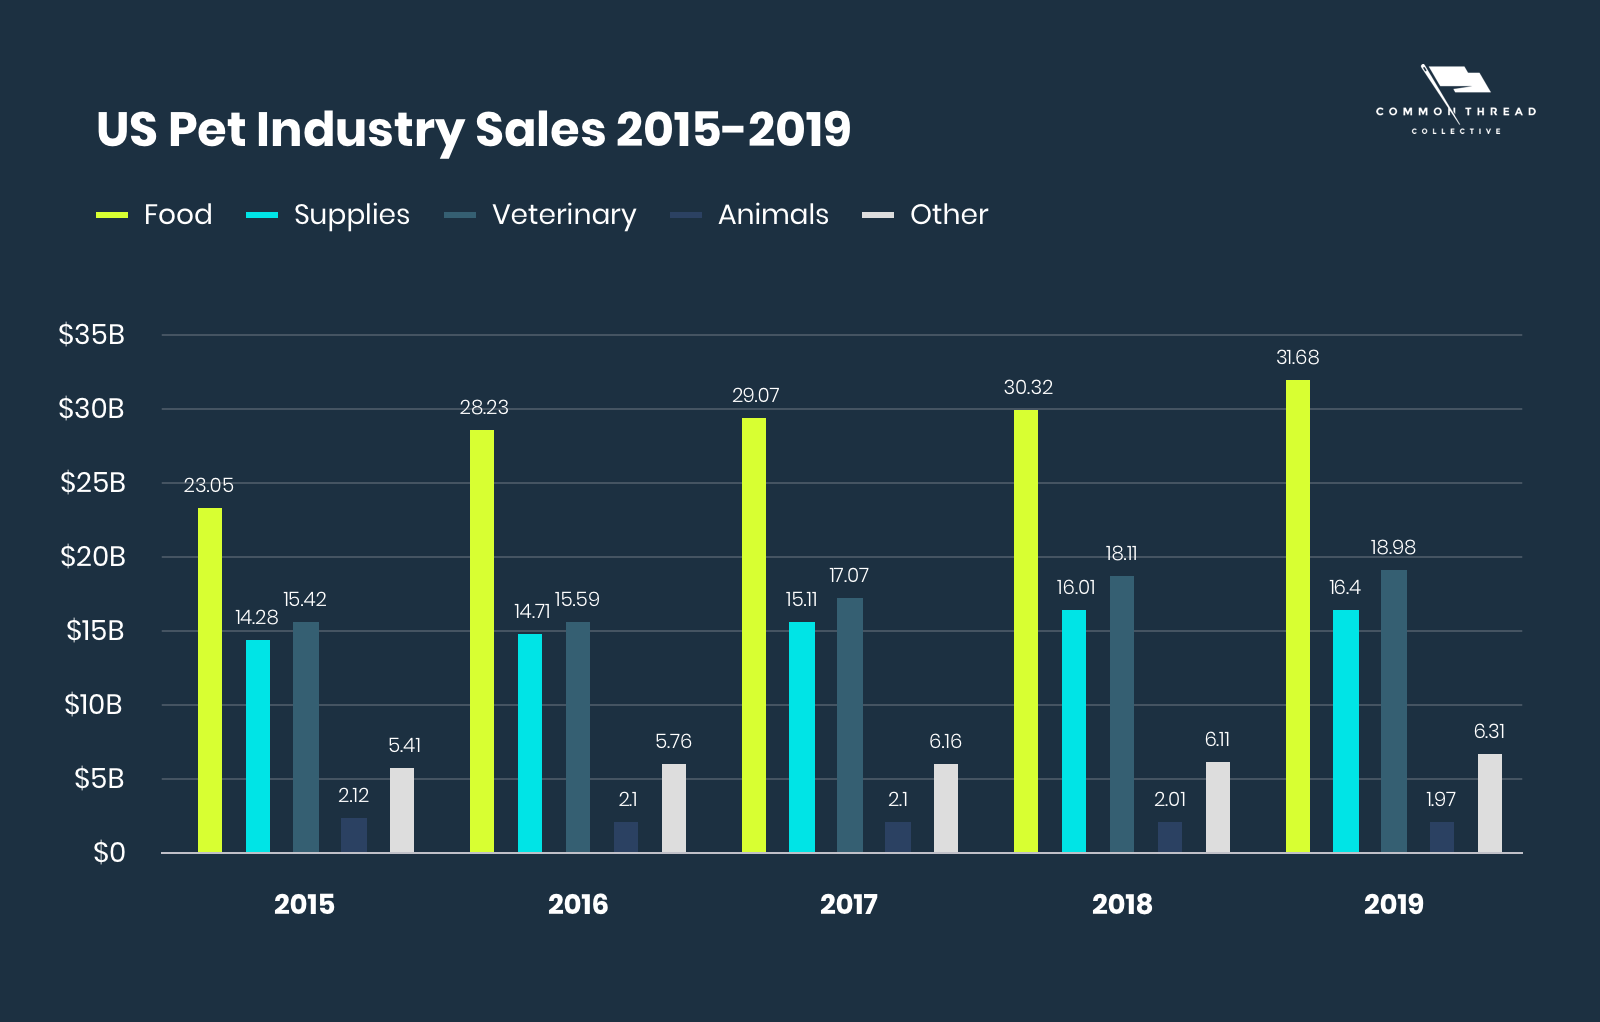 US Pet Industry Sales 2015-2019